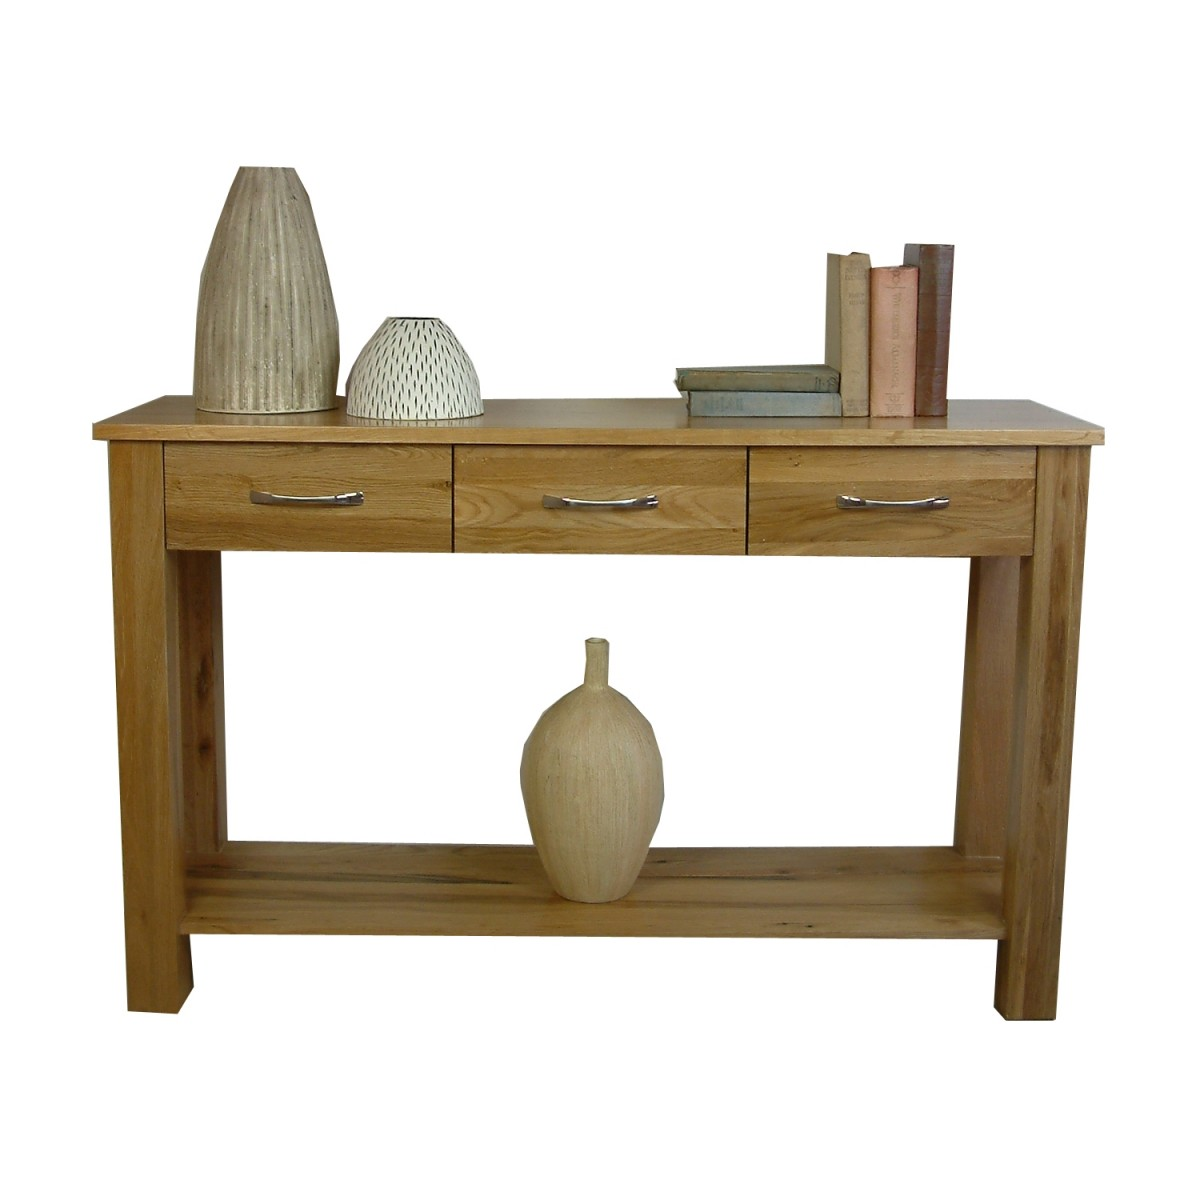 baumhaus mobel solid oak console table cor02c baumhaus mobel solid oak